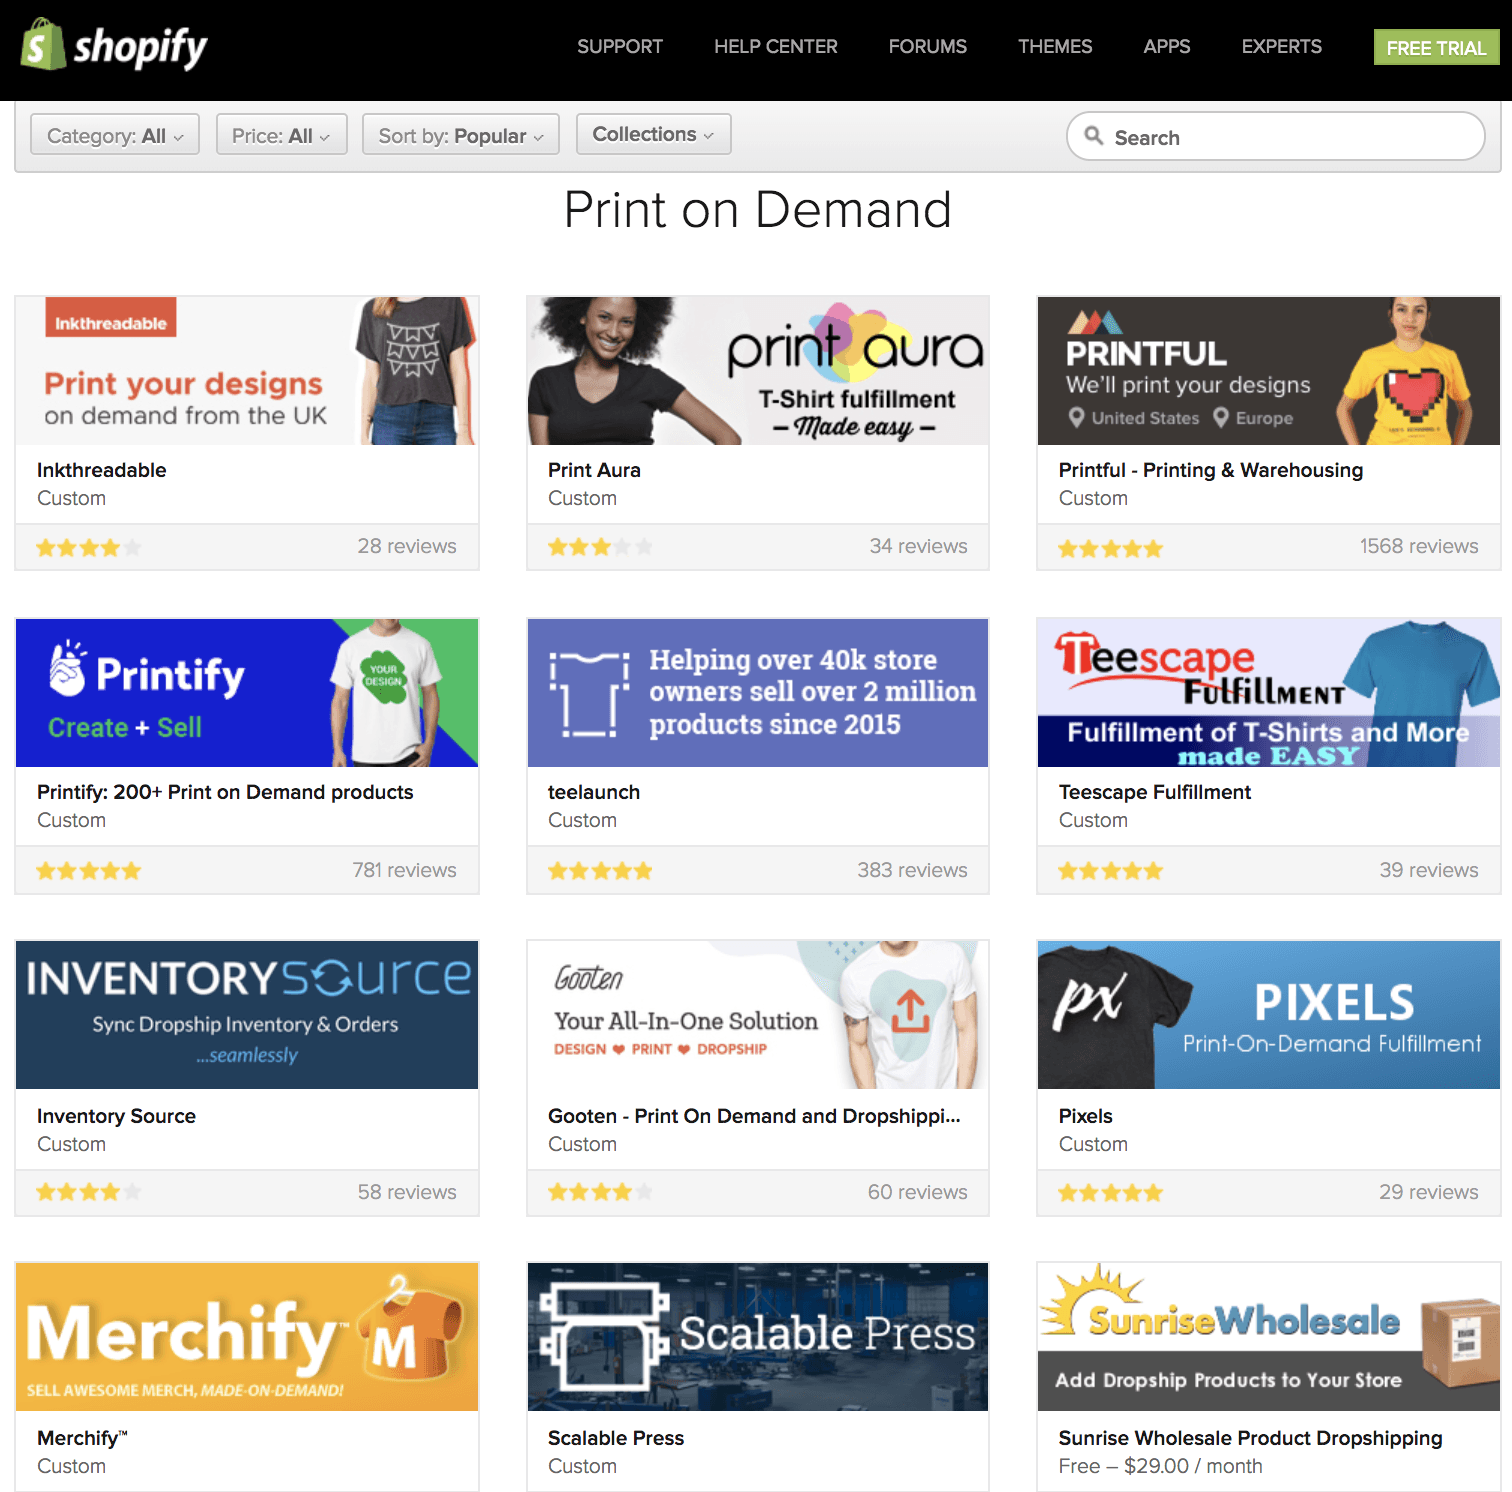 Print on Demand apps on shopify